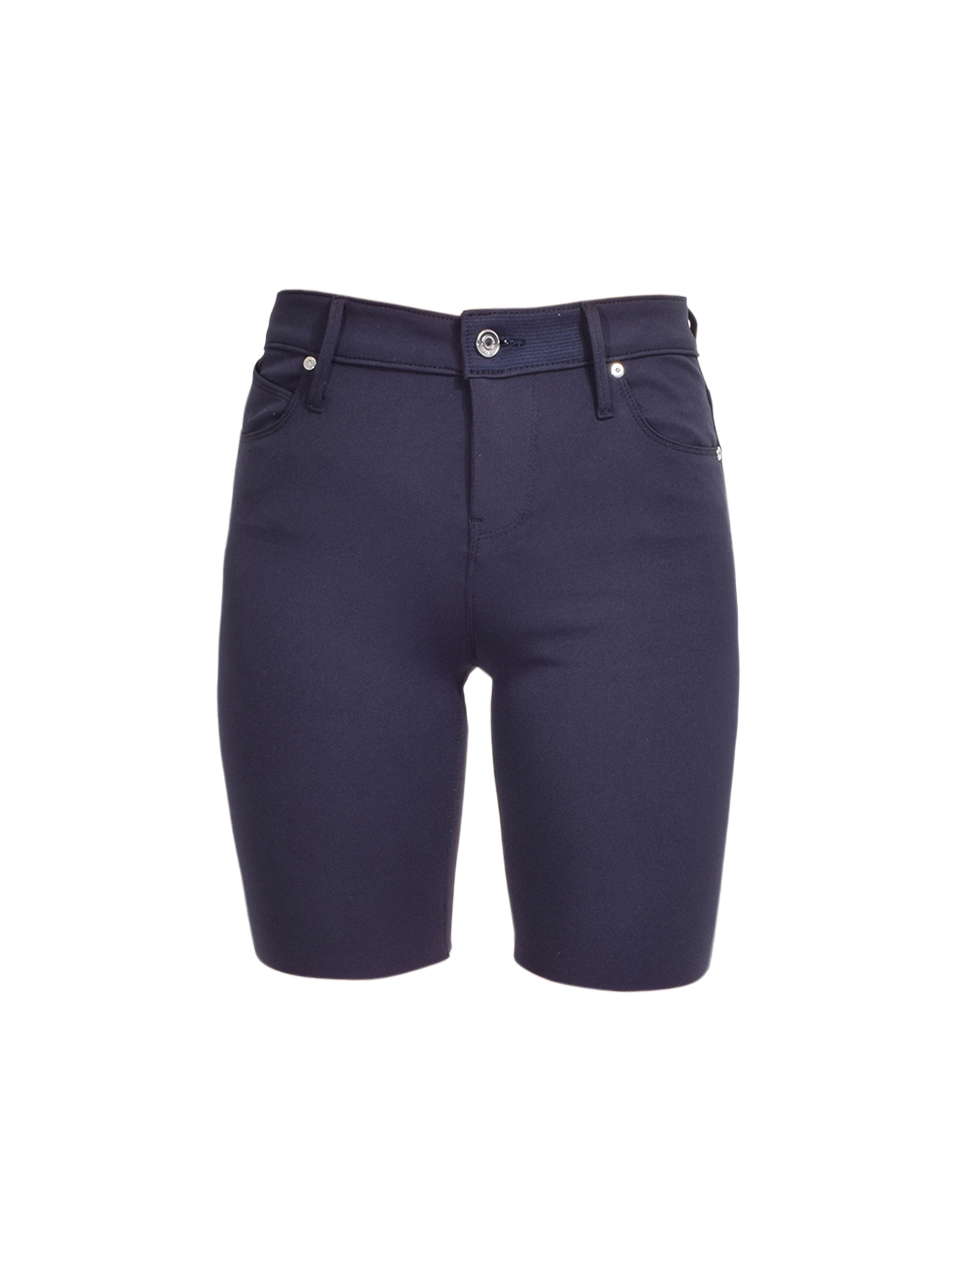 RTA Toure Cycle Short in Navy Product Shot